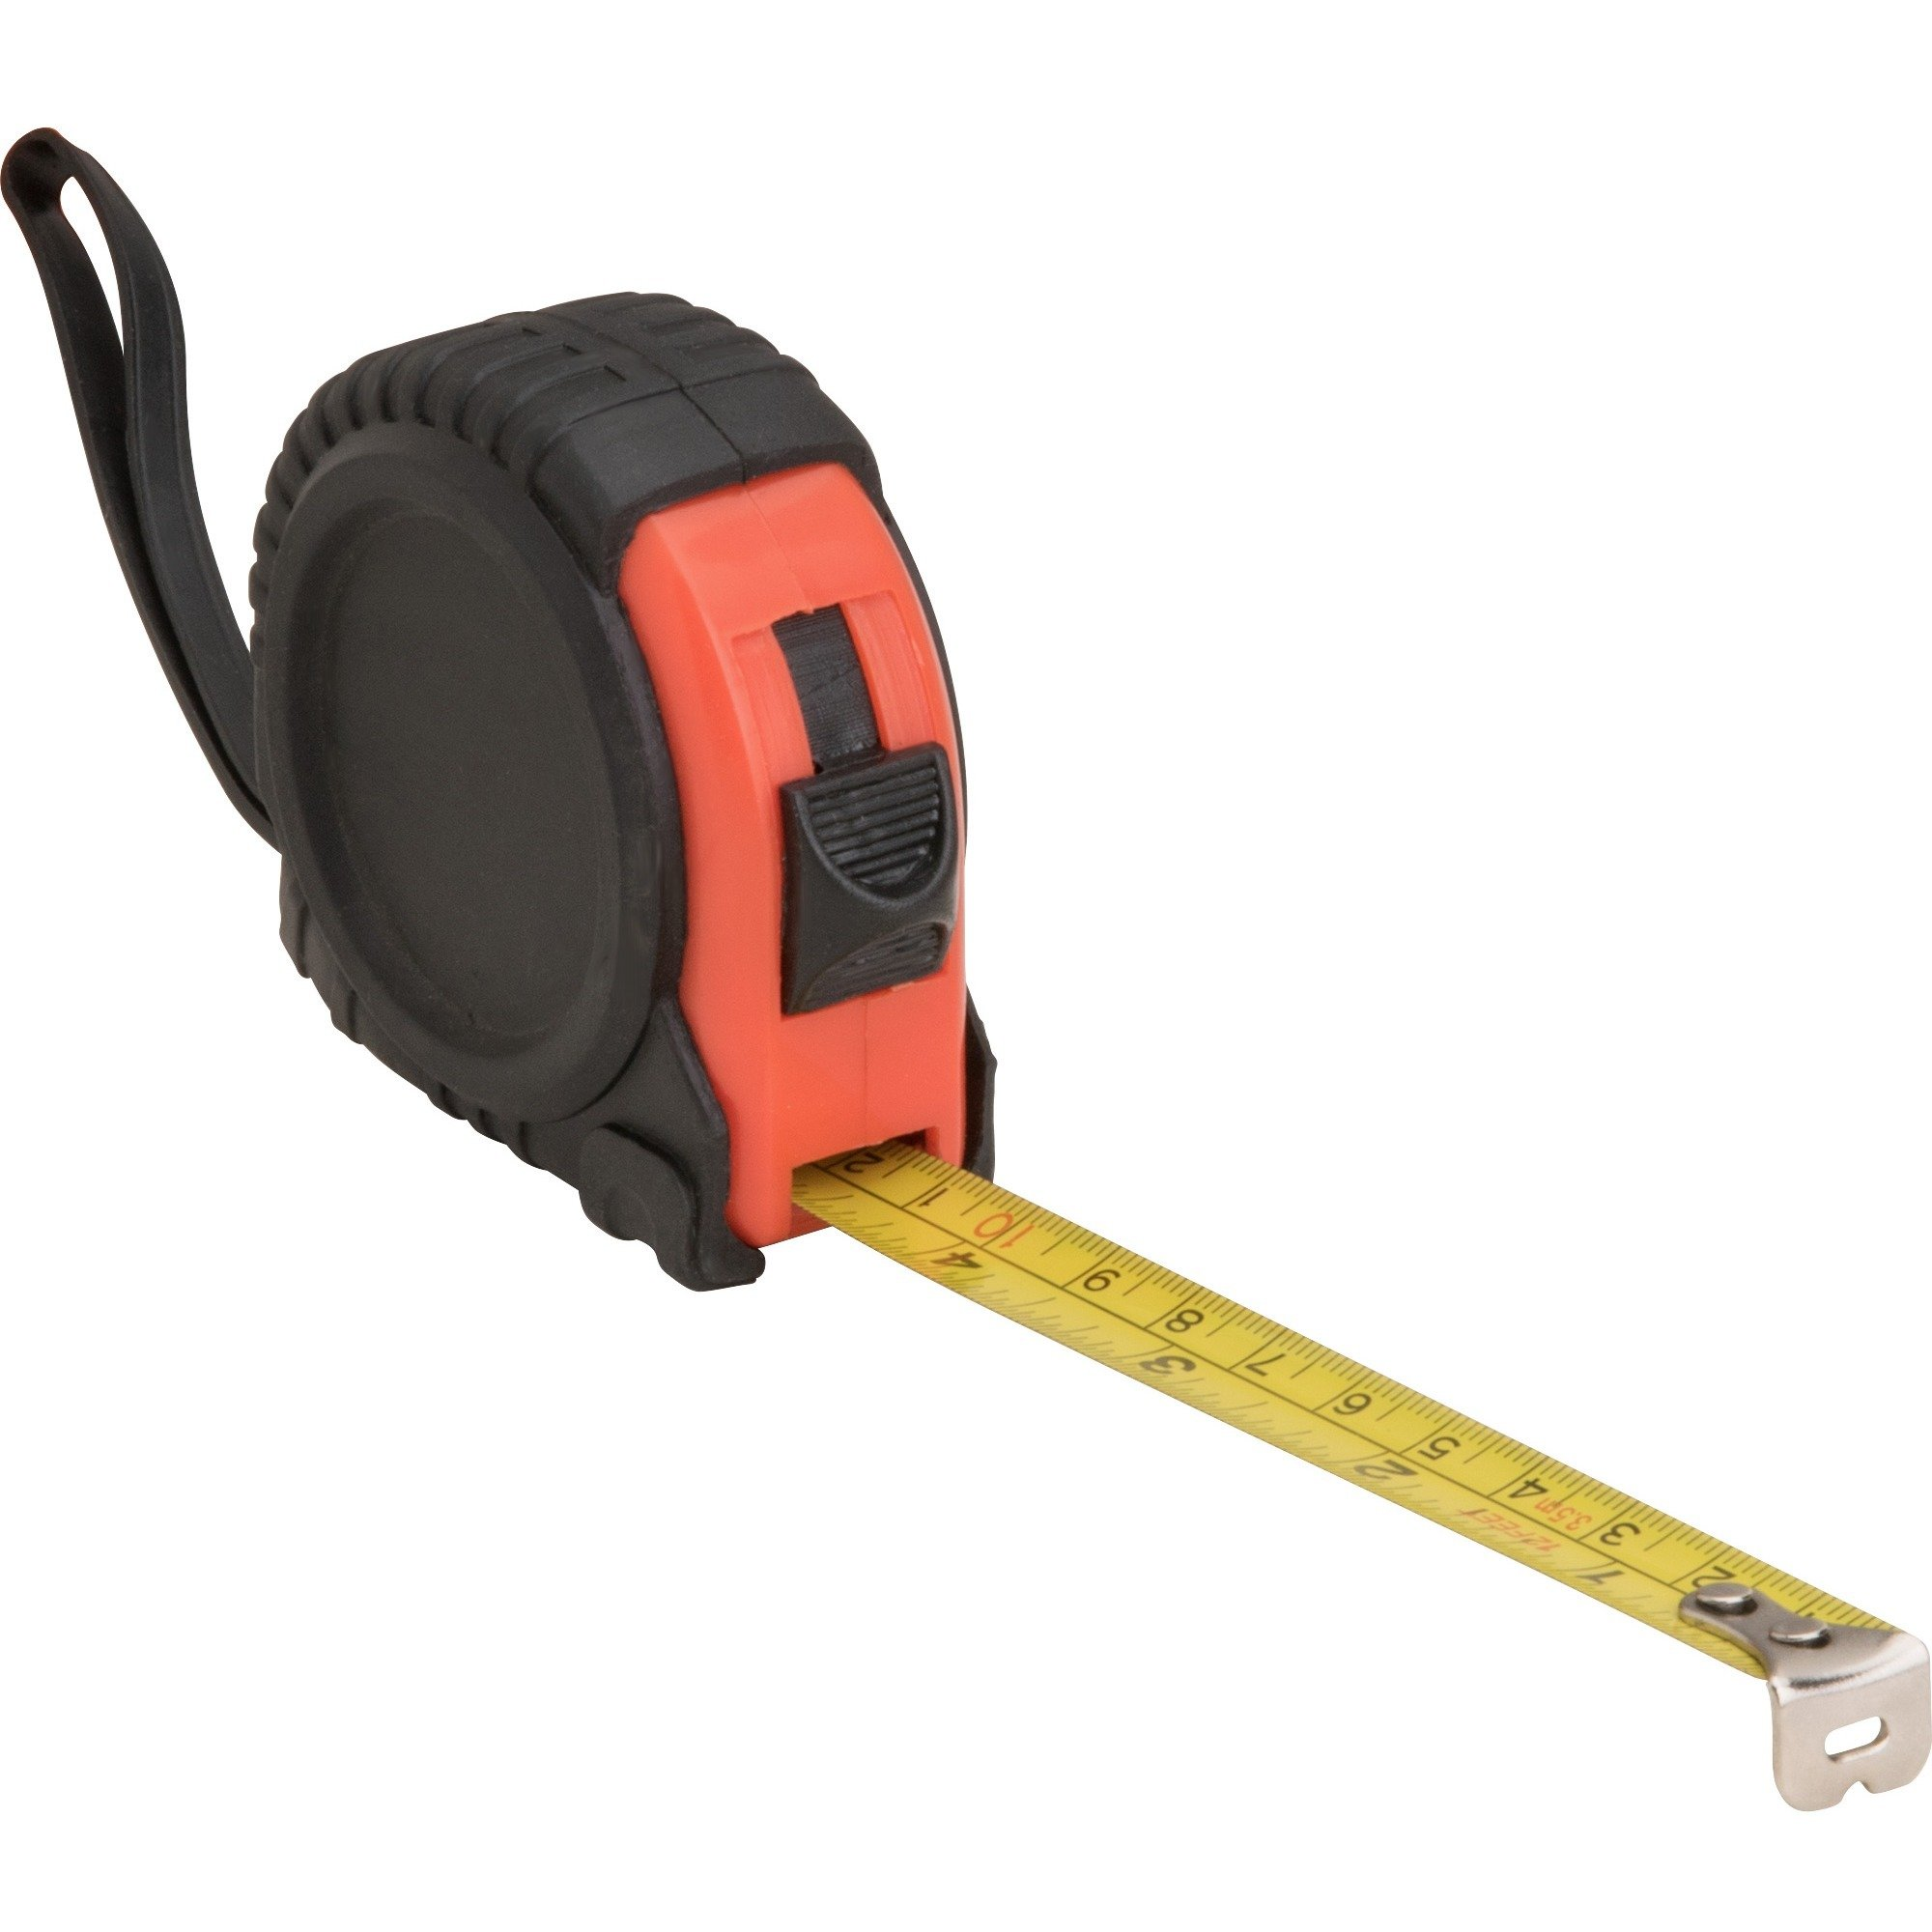 Genuine Joe Tape Measure - Each